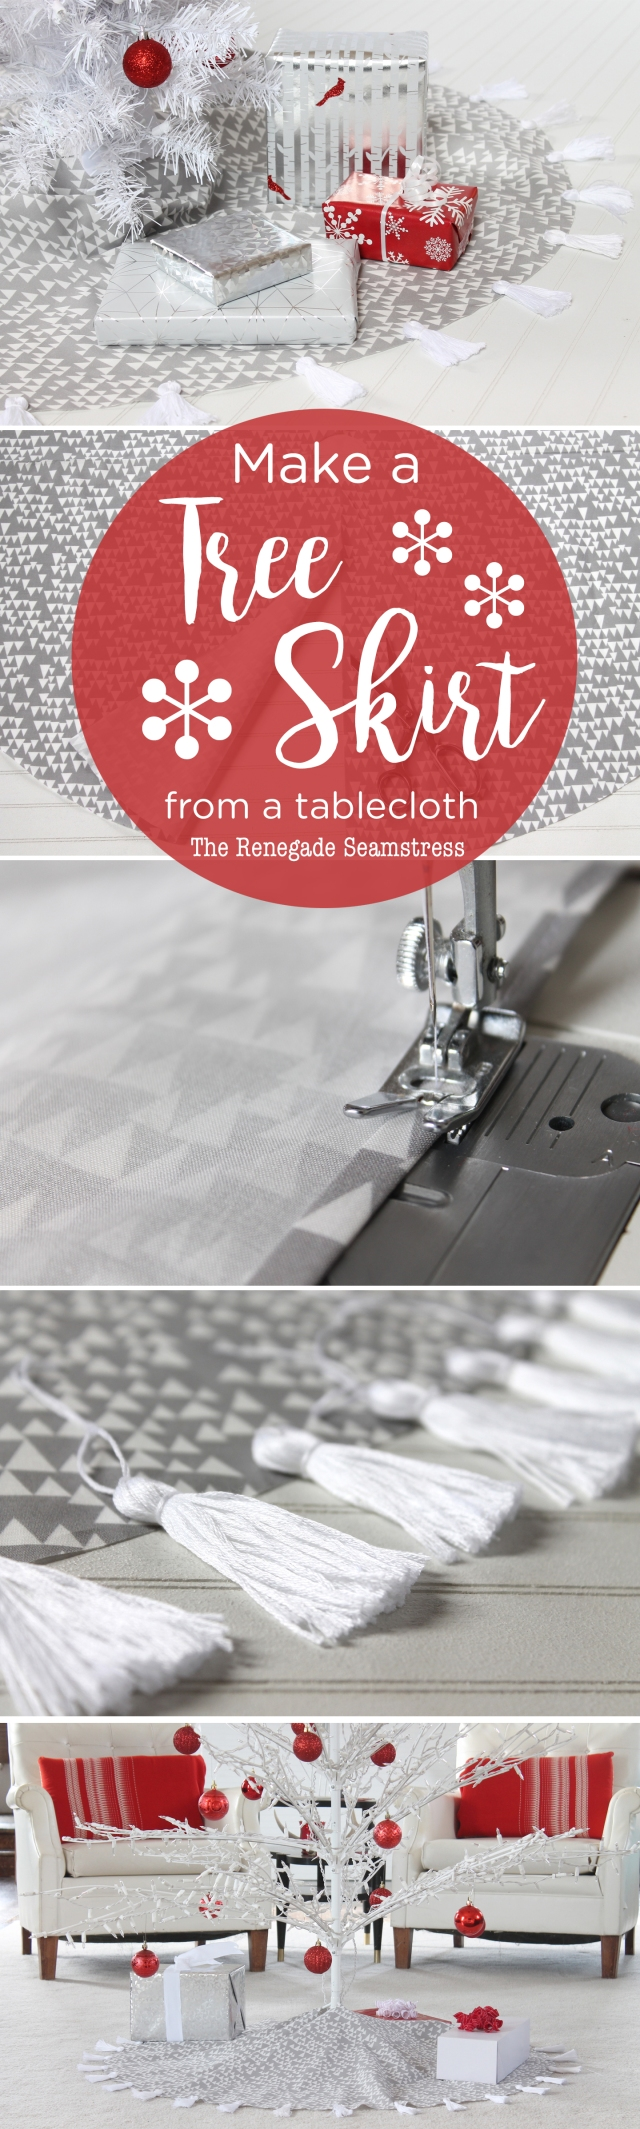 modern-christmas-tree-skirt-made-from-a-tablecloth